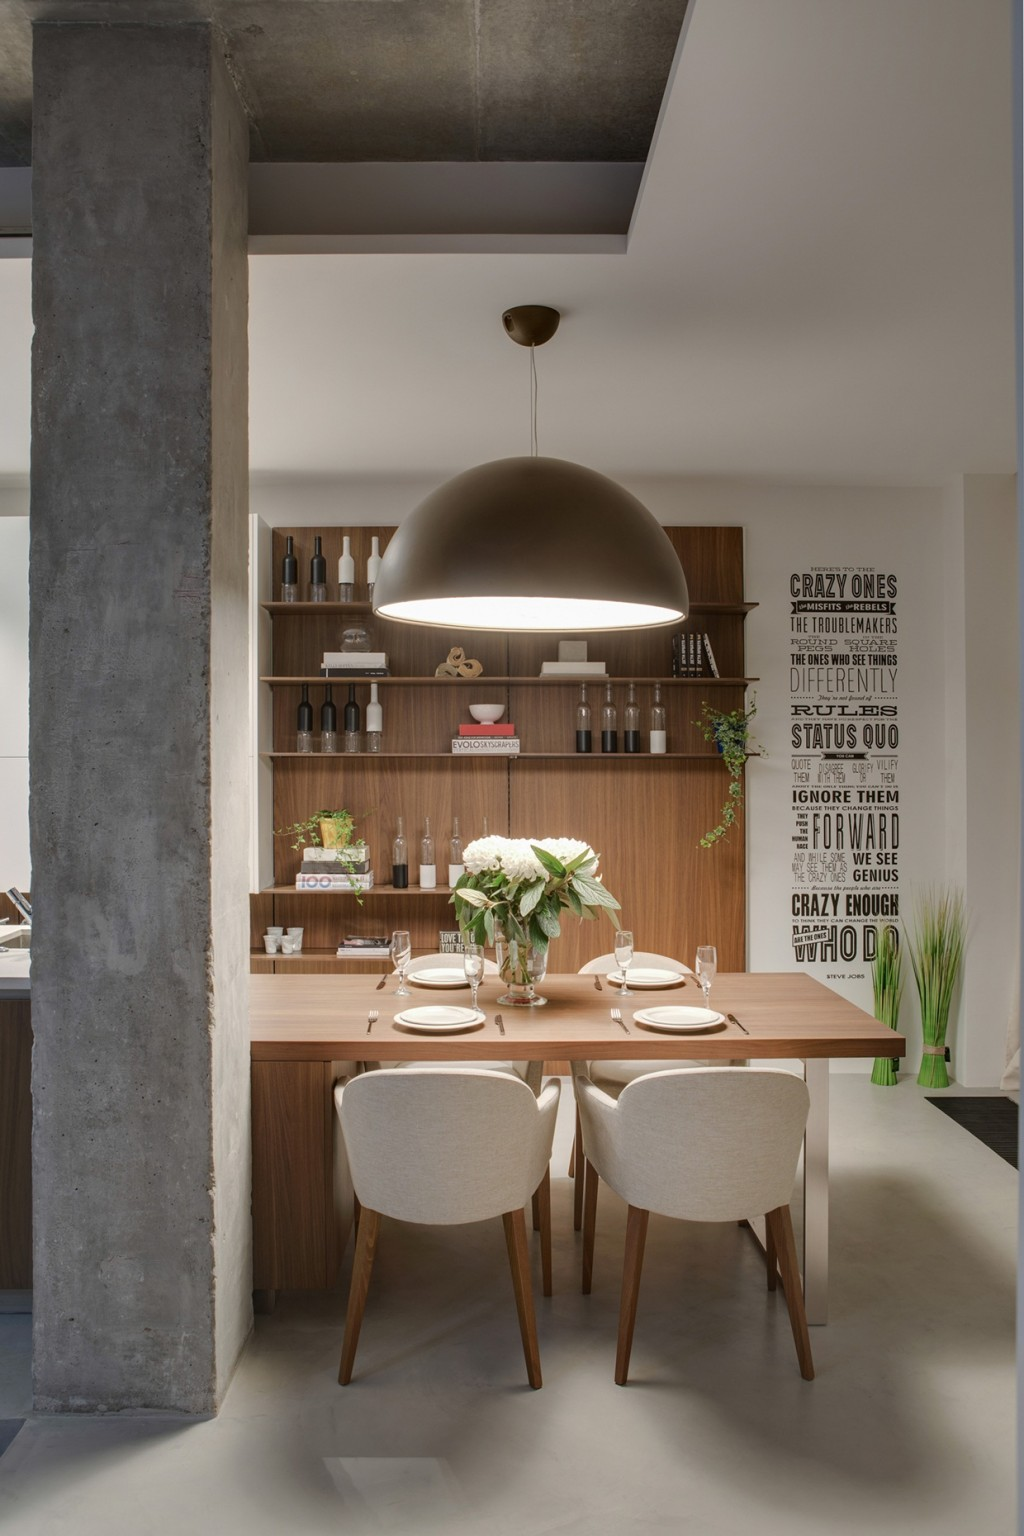 Apartment: Designing A Super Stylish Party Pad: The Oh!dessa Apartment